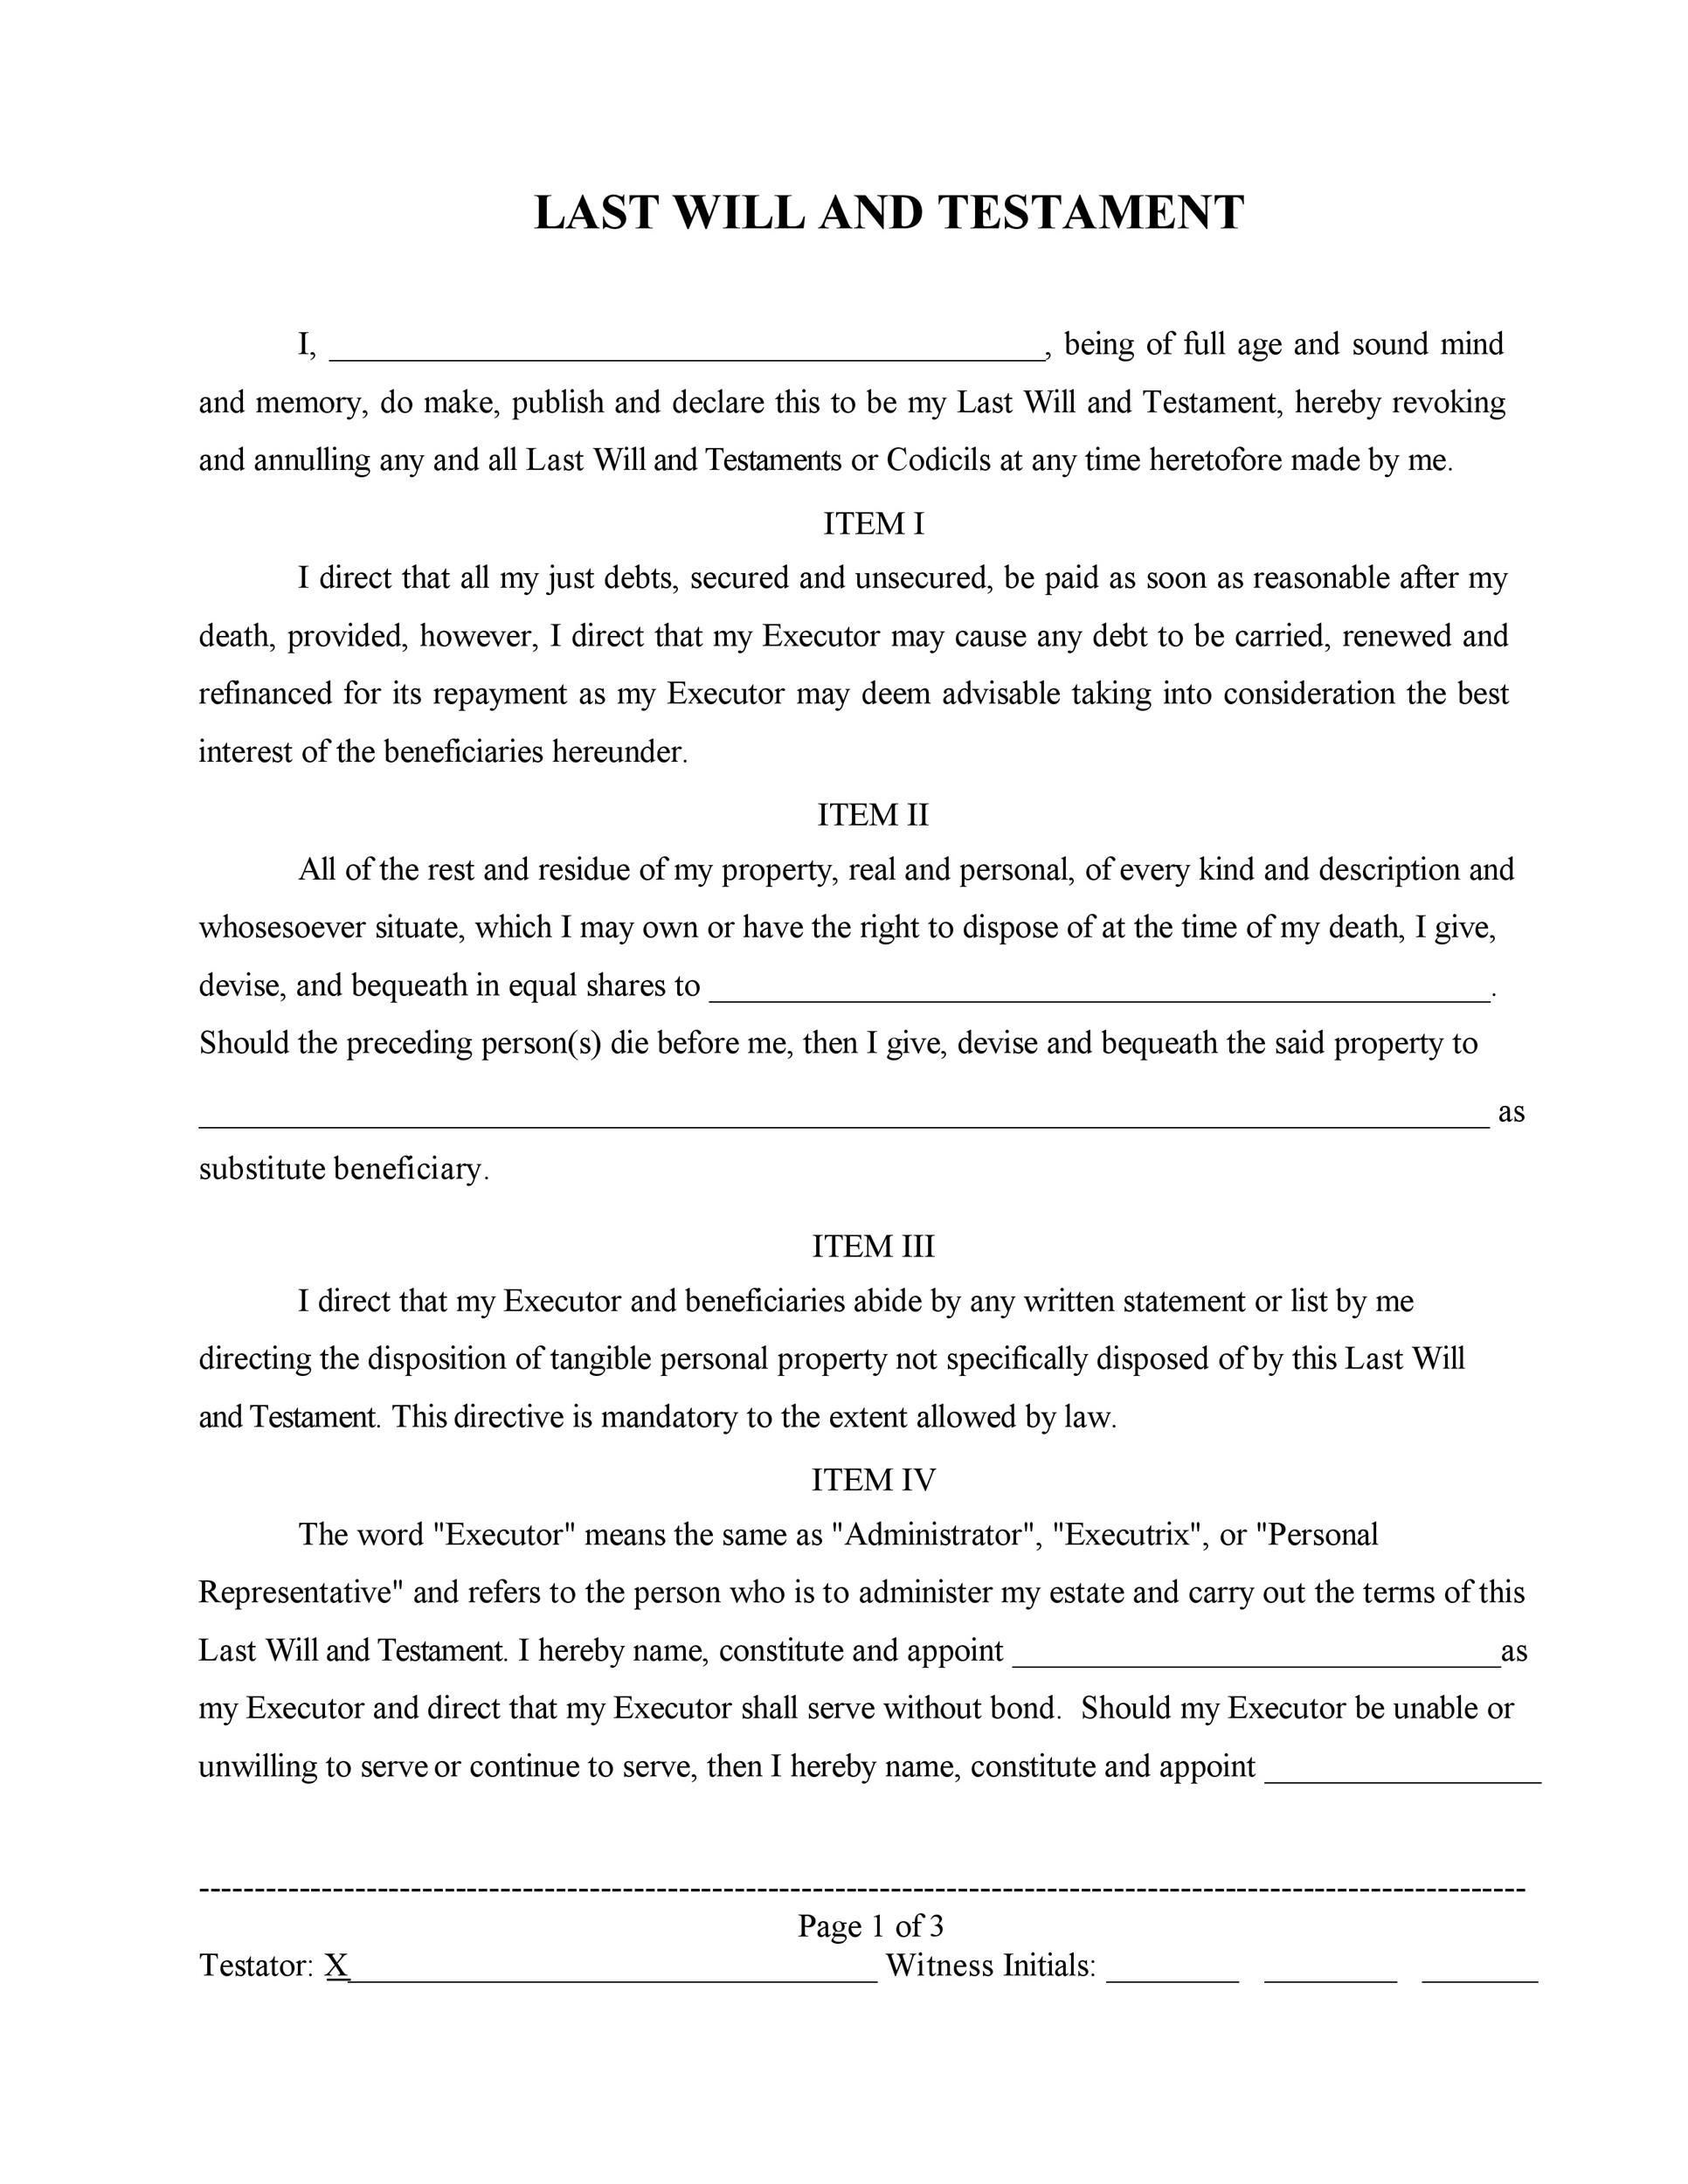 39 Last Will And Testament Forms & Templates - Template Lab